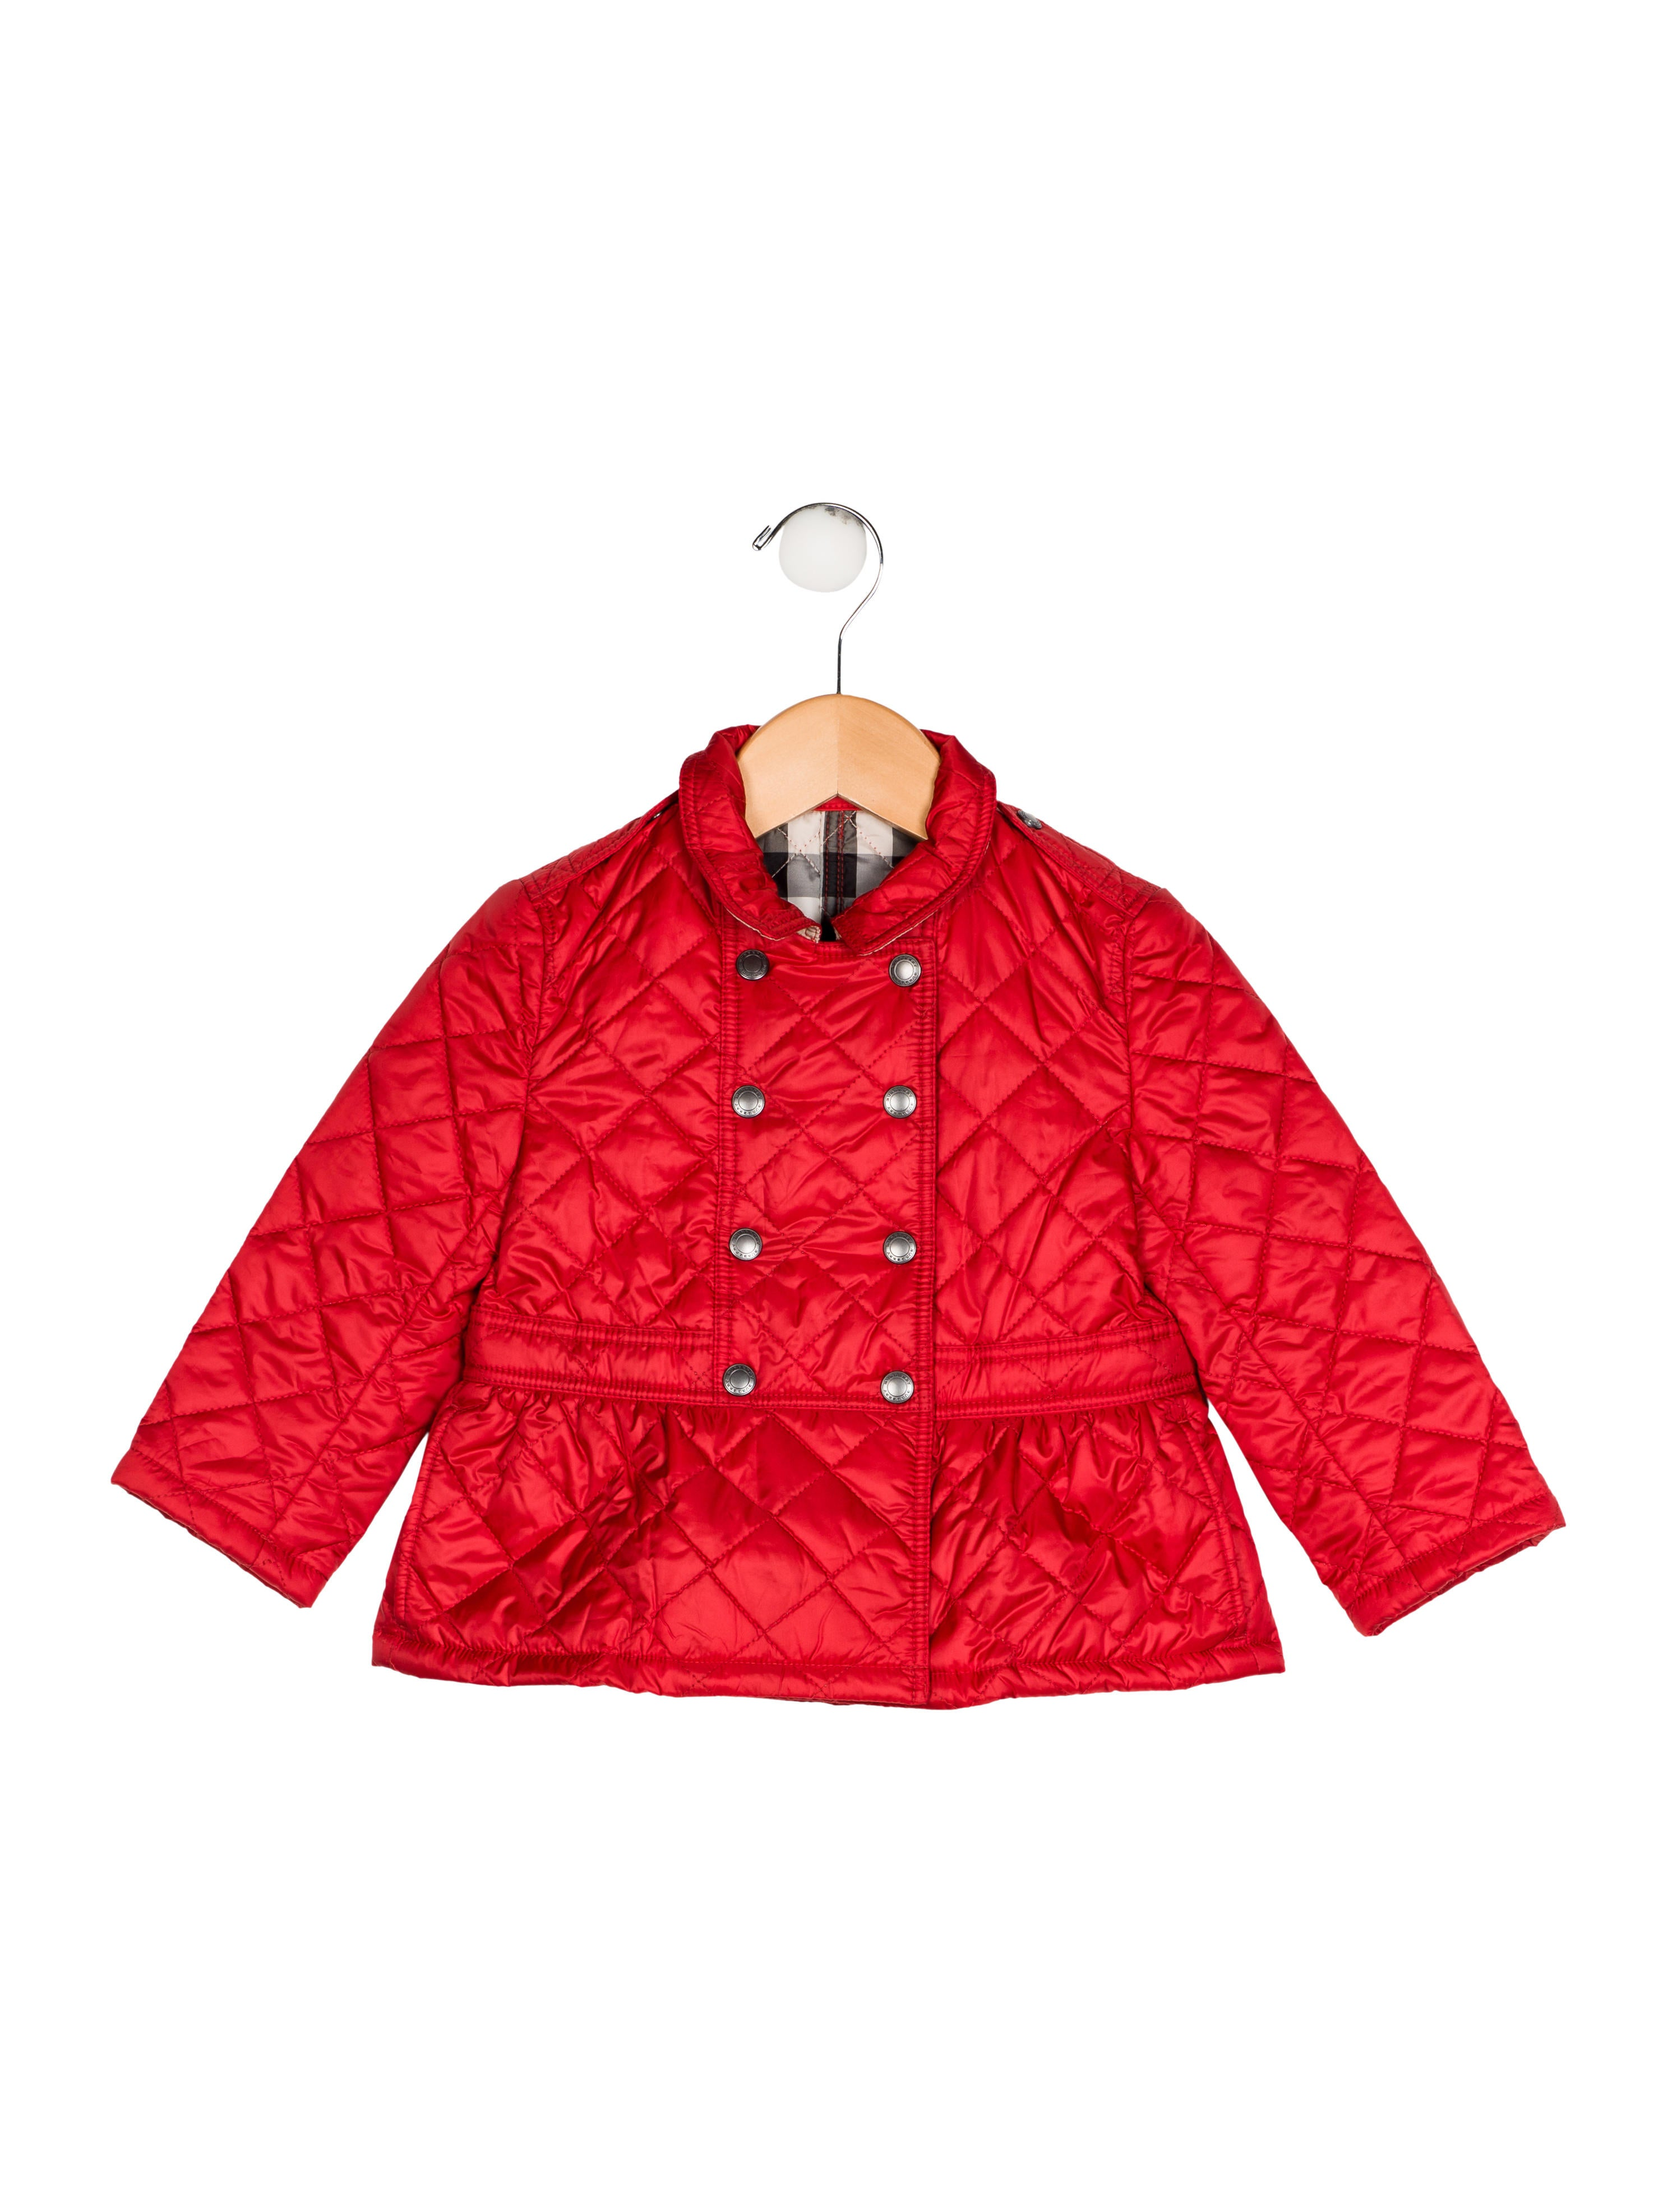 Burberry Girls Quilted Jacket Girls Bur90809 The Realreal